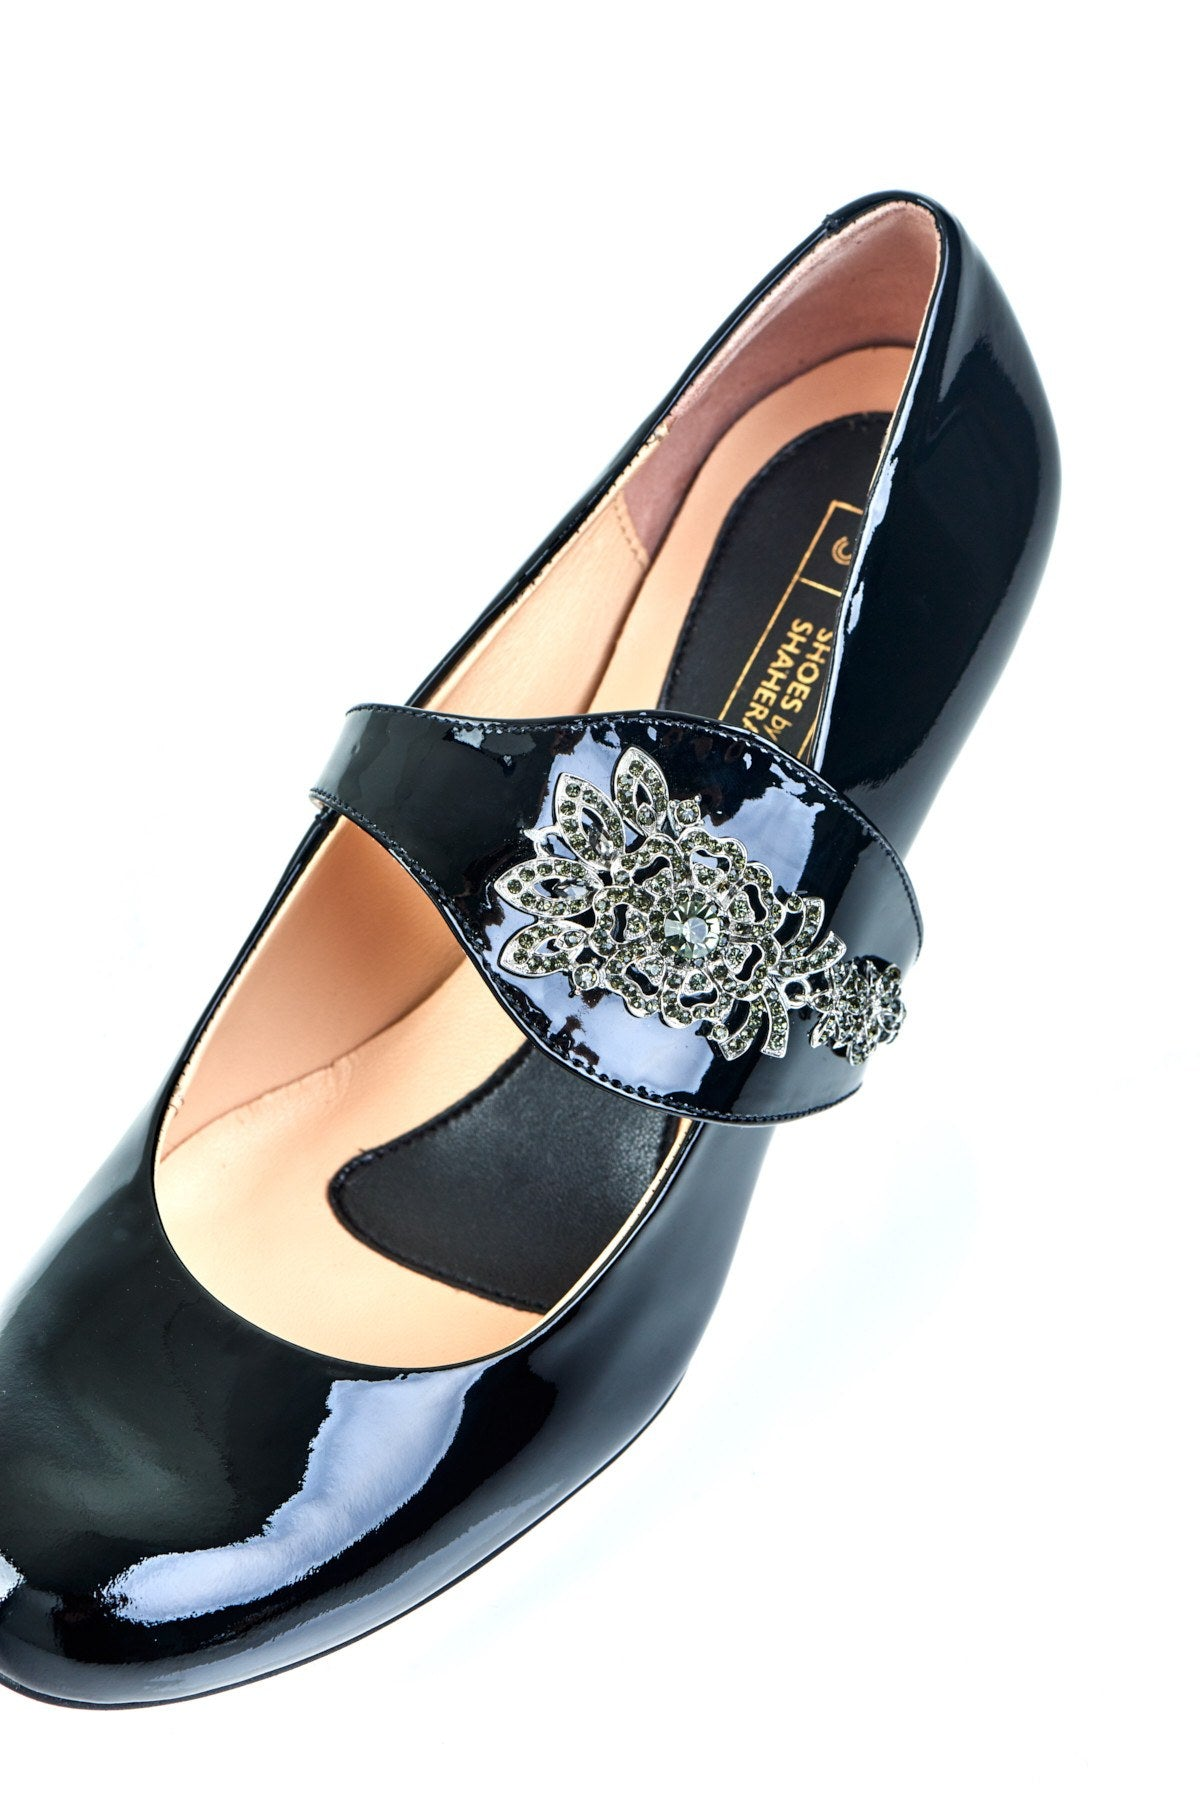 The Moon is Mine - Shoellery - Shoes by Shaherazad